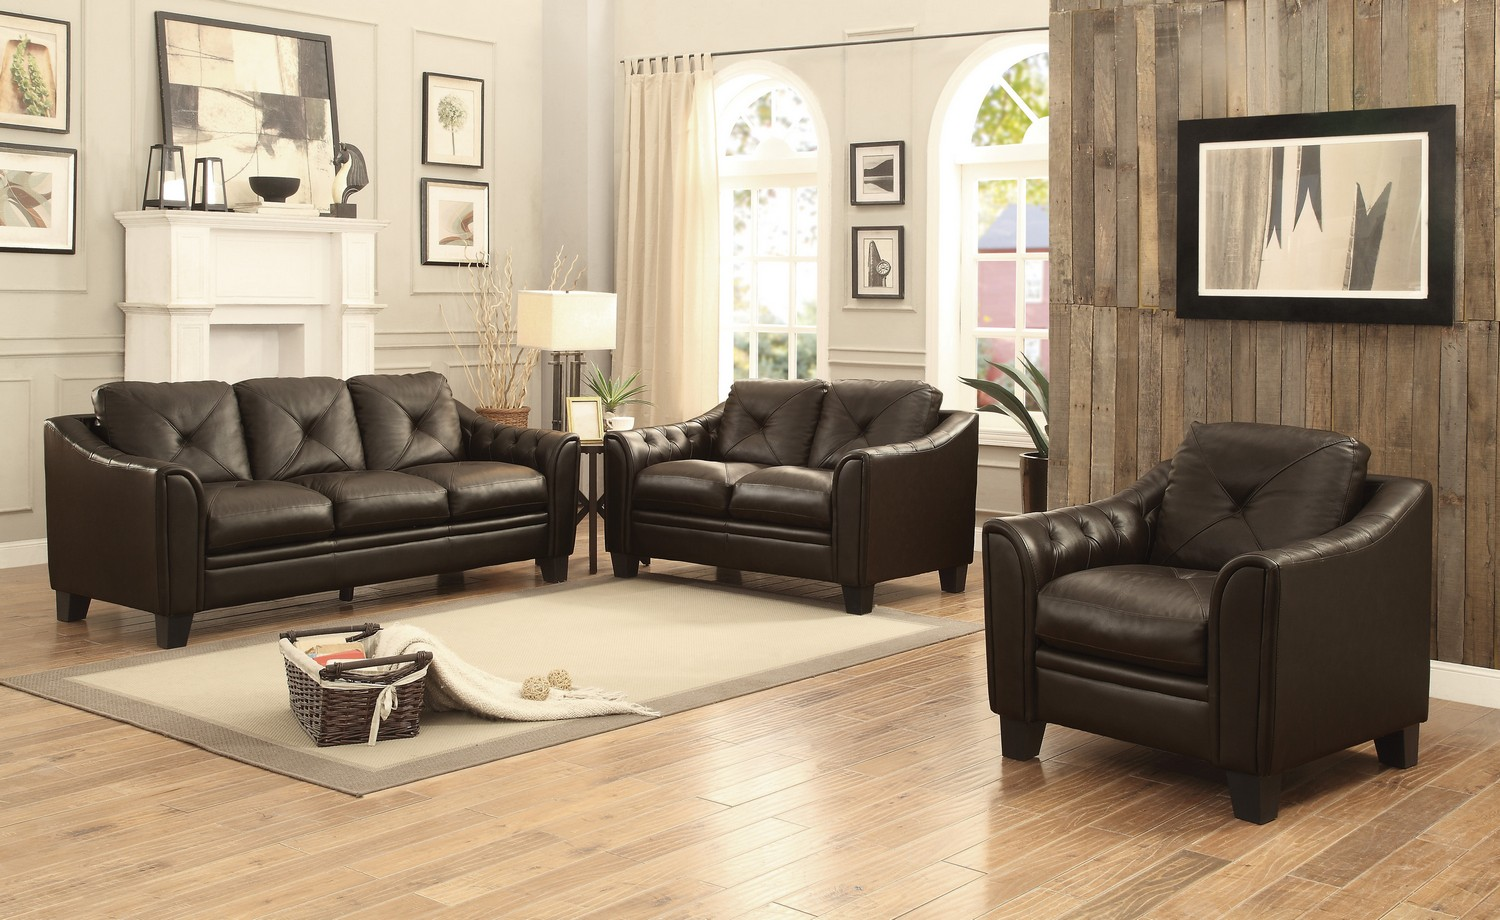 Homelegance memphis sofa set top grain leather match for Sofa sectionnel maison corbeil